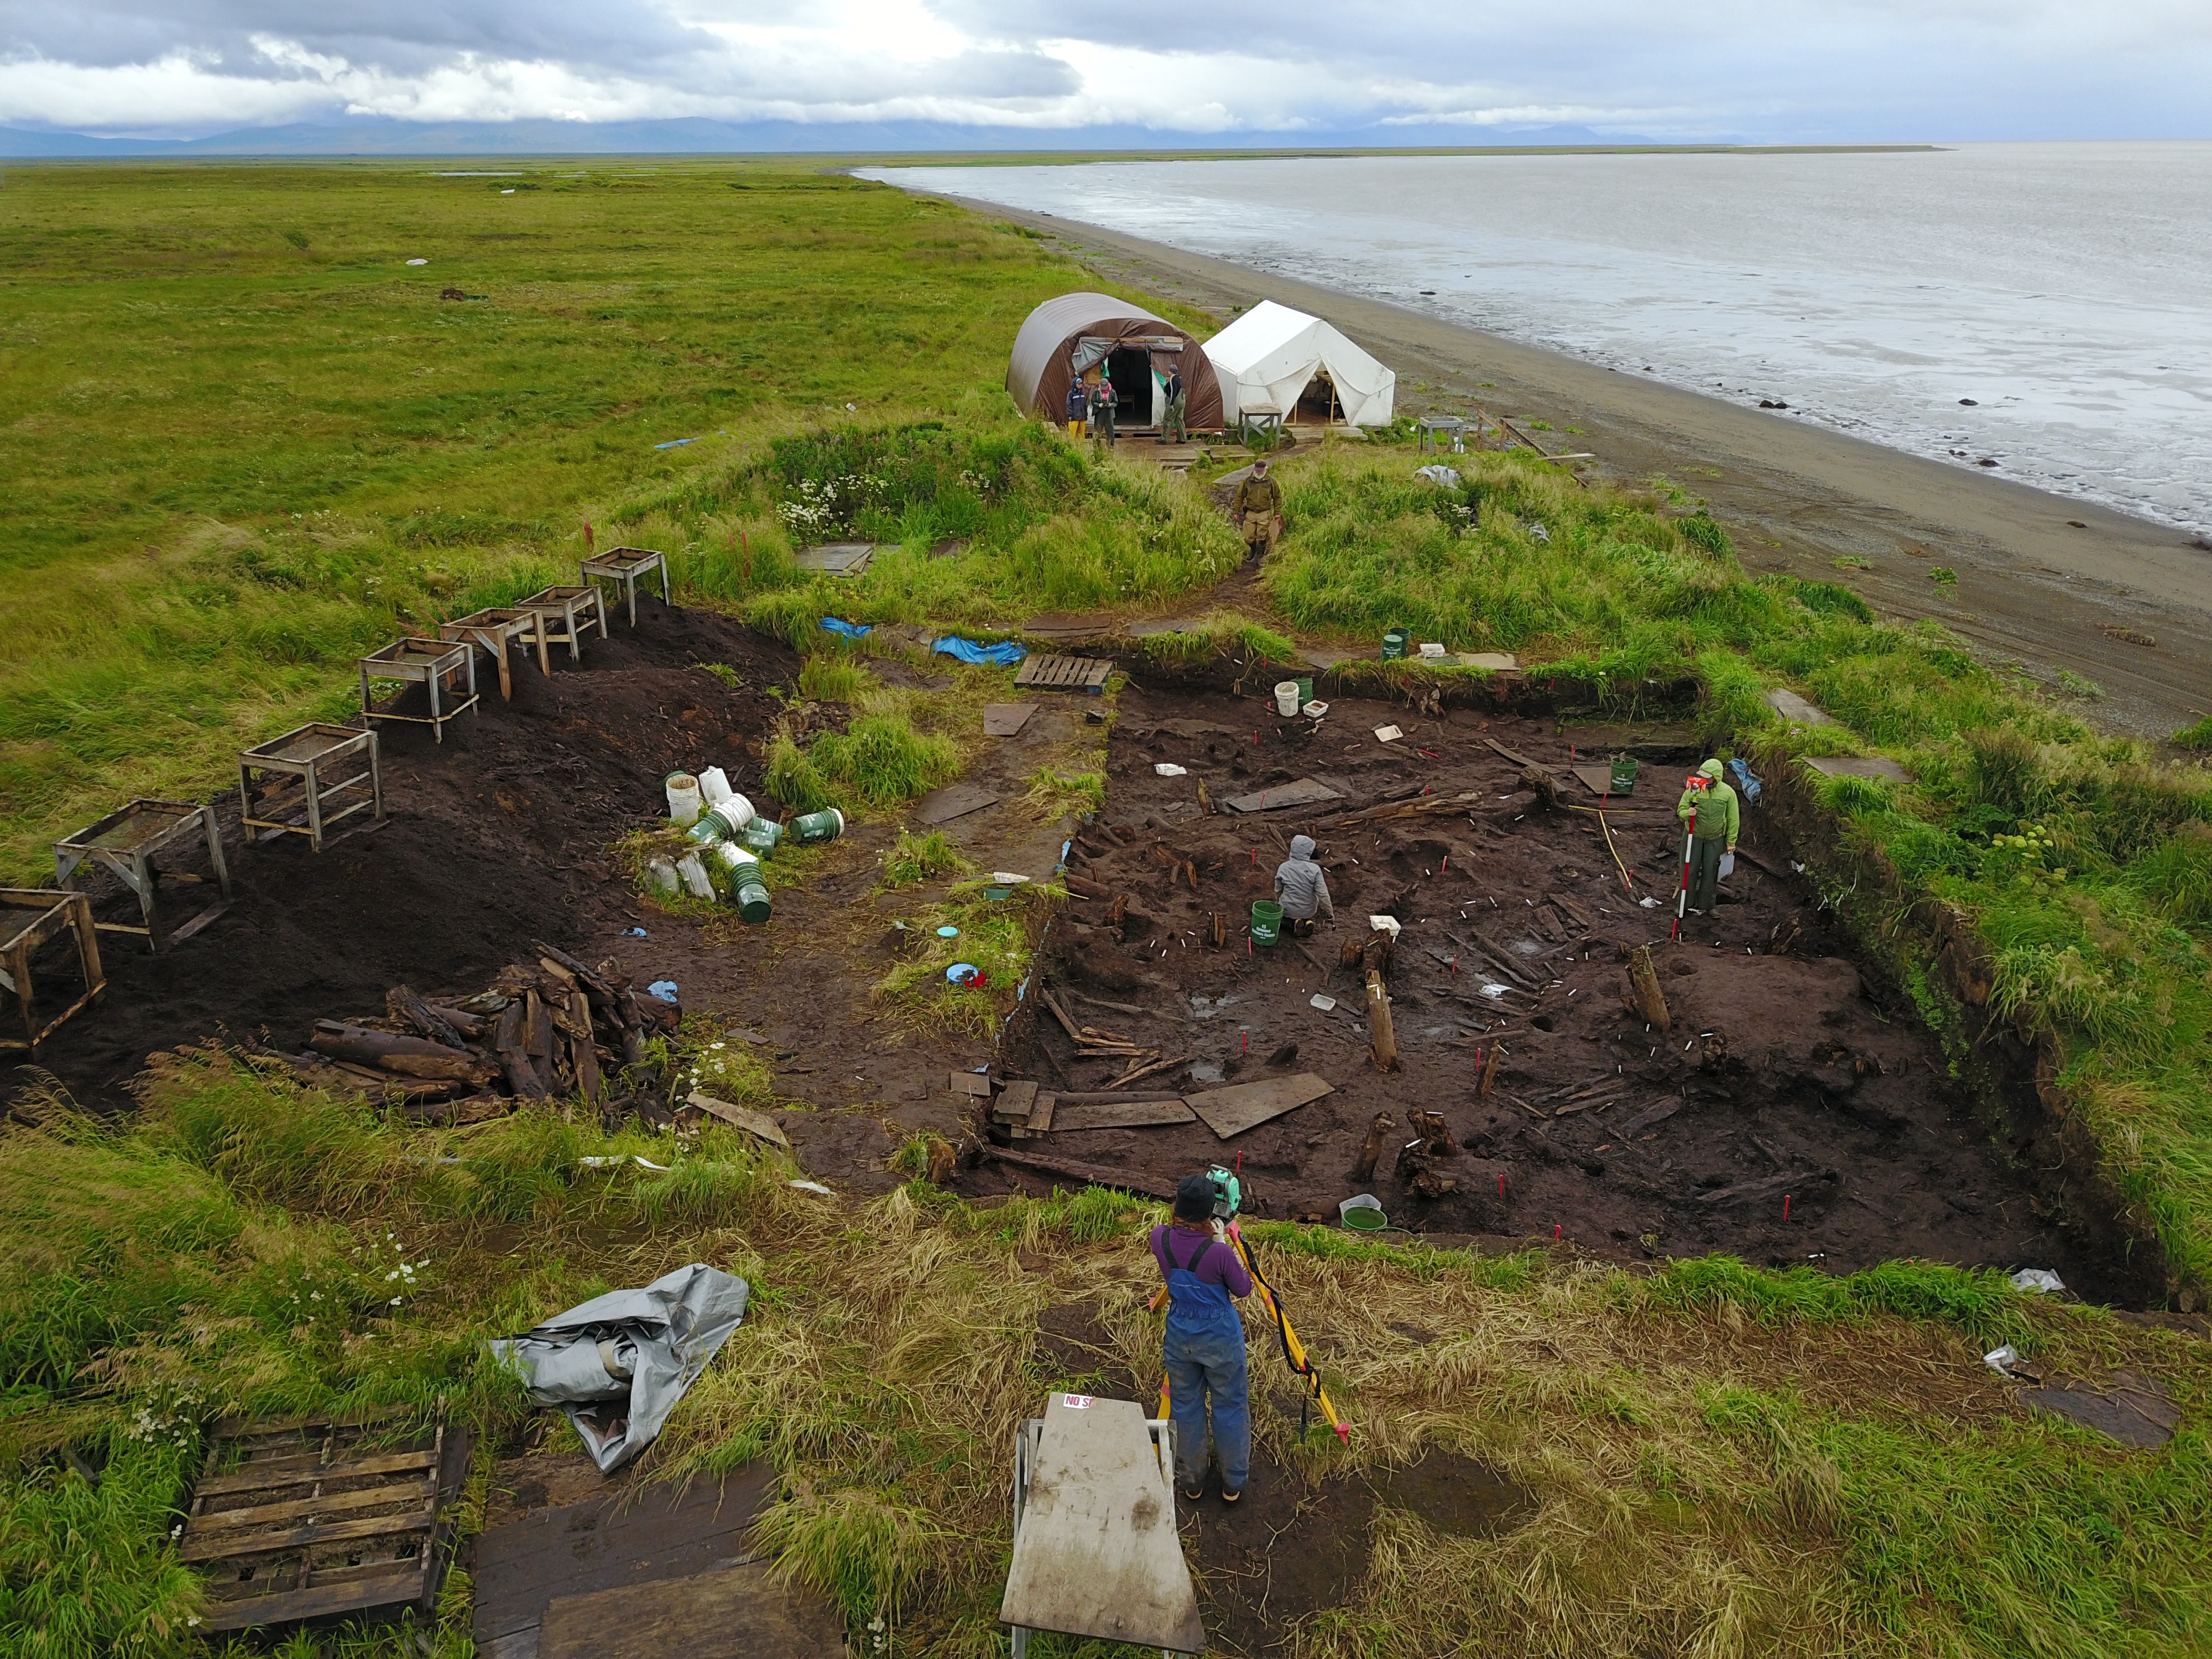 The Nunalleq archaeological site sits next to the Bering Sea near Quinhagak. The dig is filled back in at the end of the season to protect it in winter, and sand bags are packed across the face of the bluff to slow erosion. (Sven Haakanson)